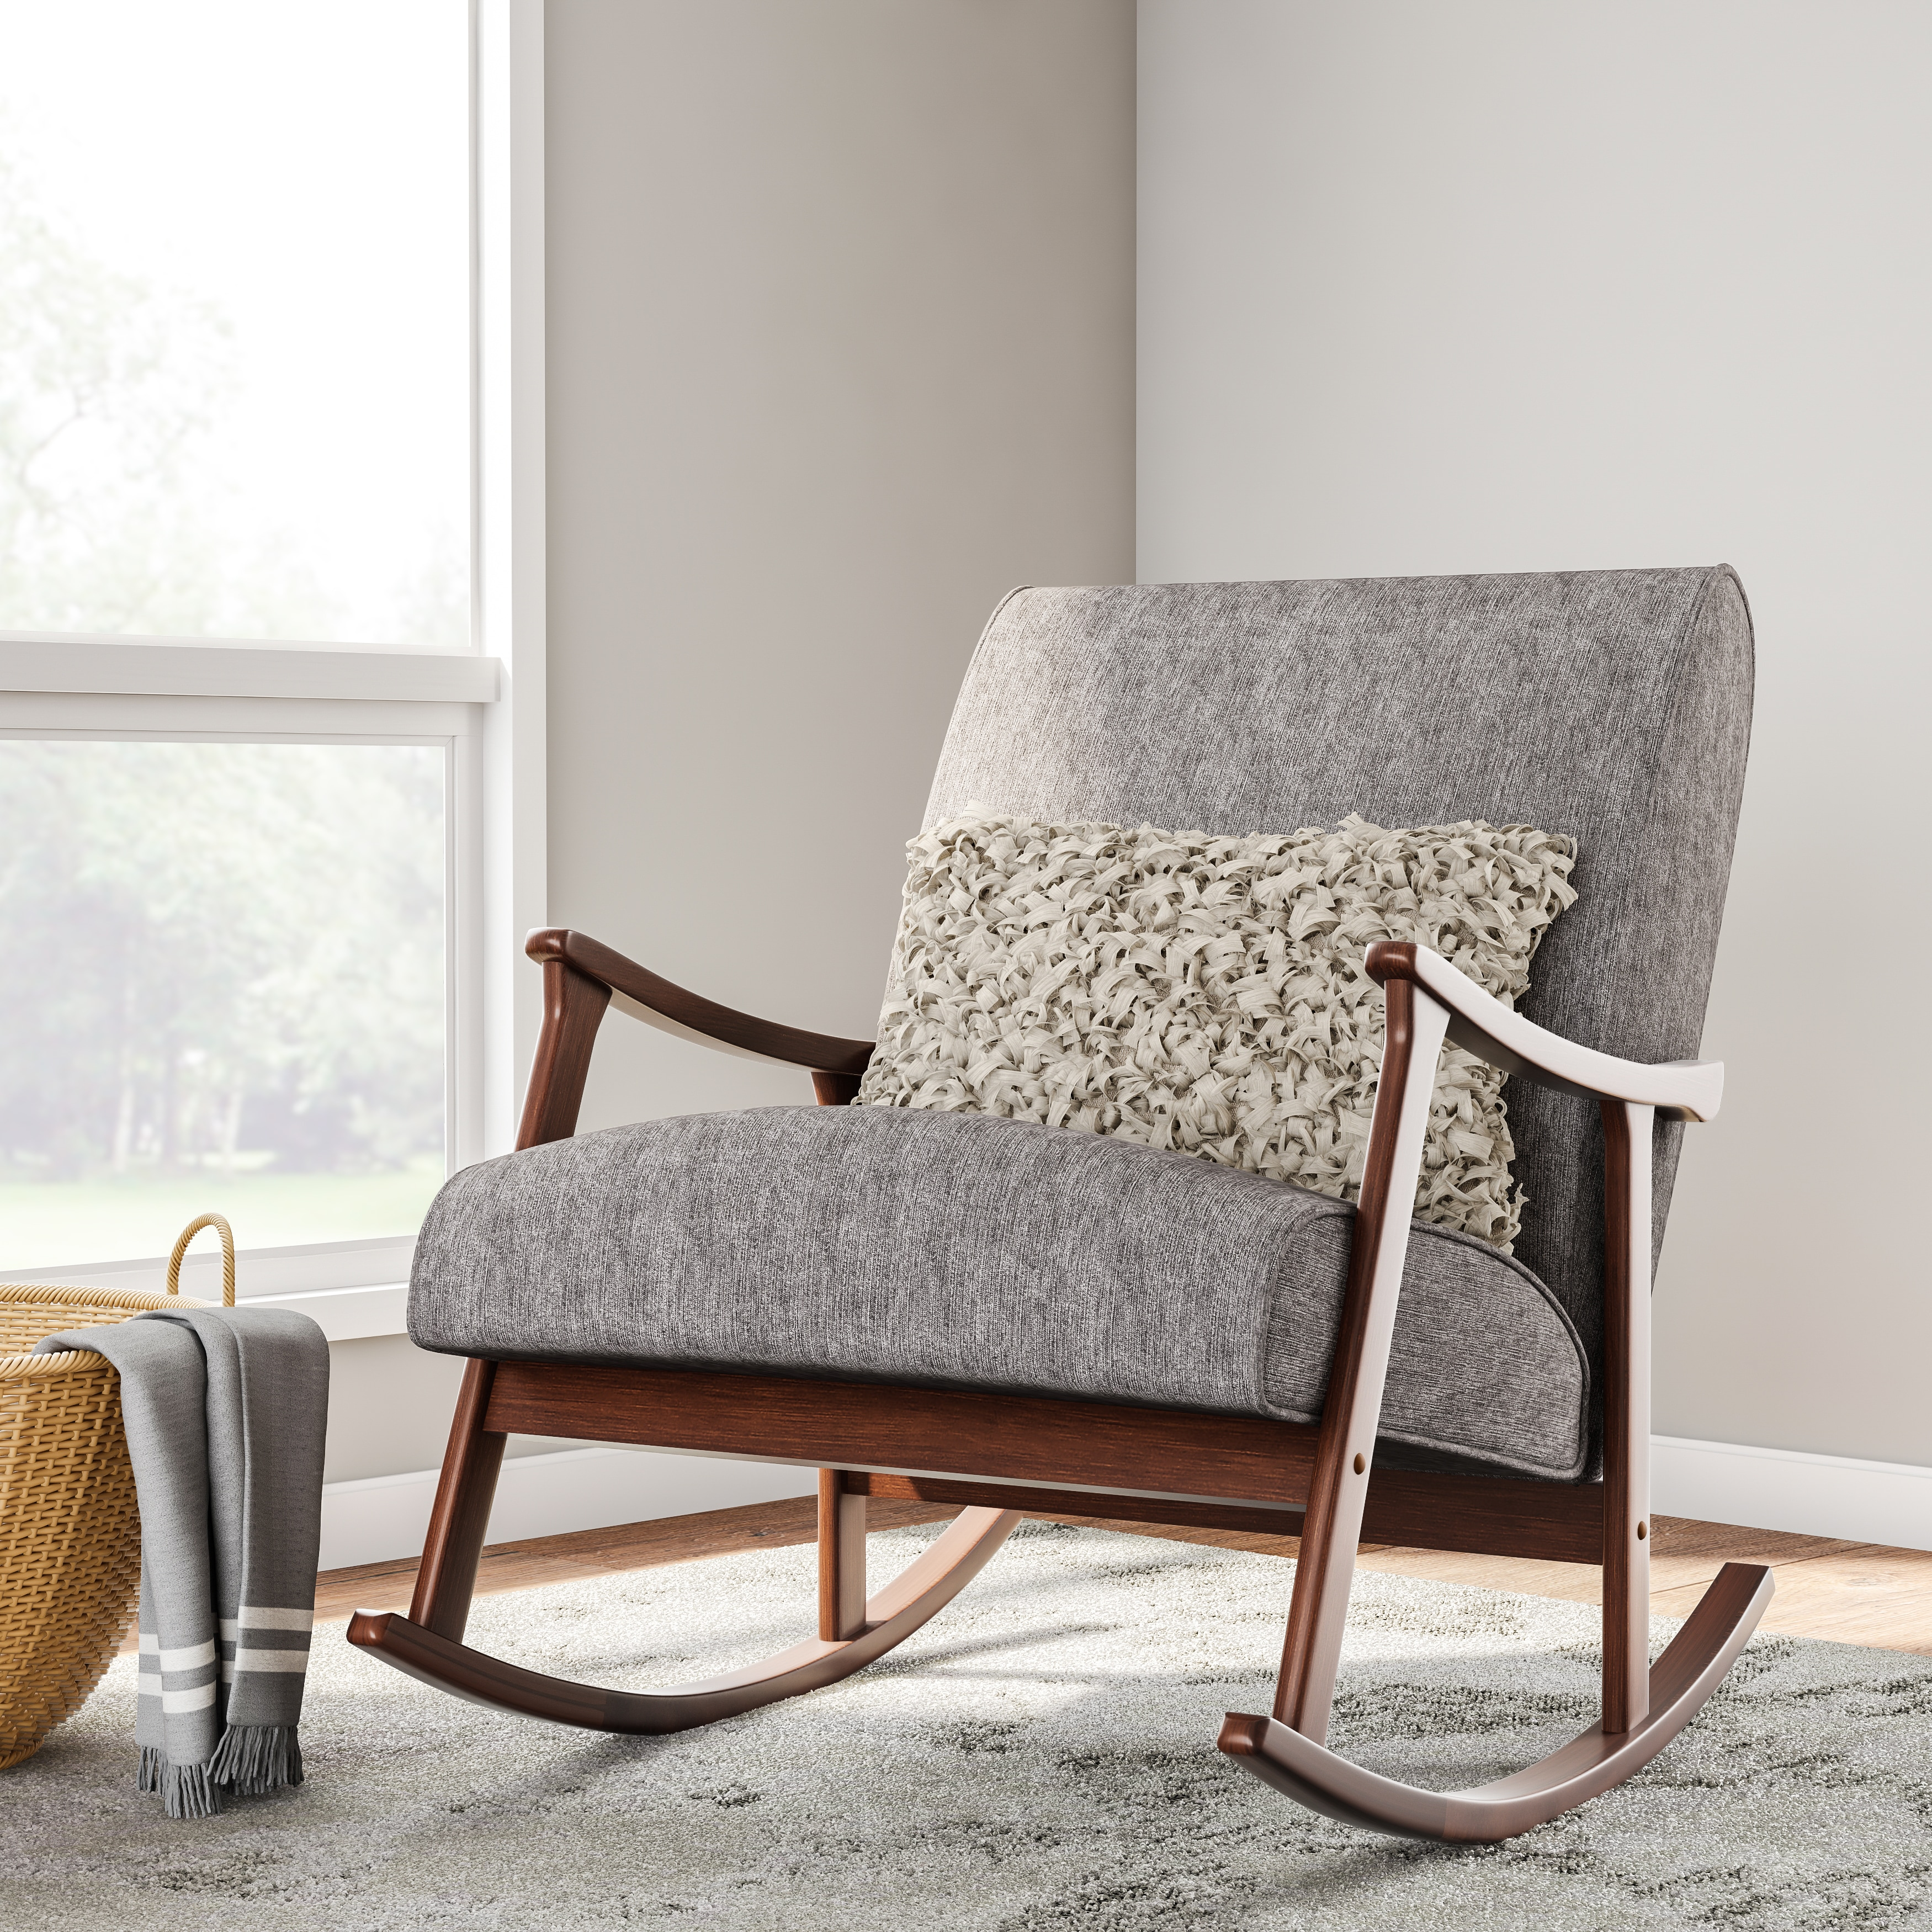 Best Place To Buy Rocking Chairs Carson Carrington Granite Grey Fabric Mid Century Wooden Rocking Chair